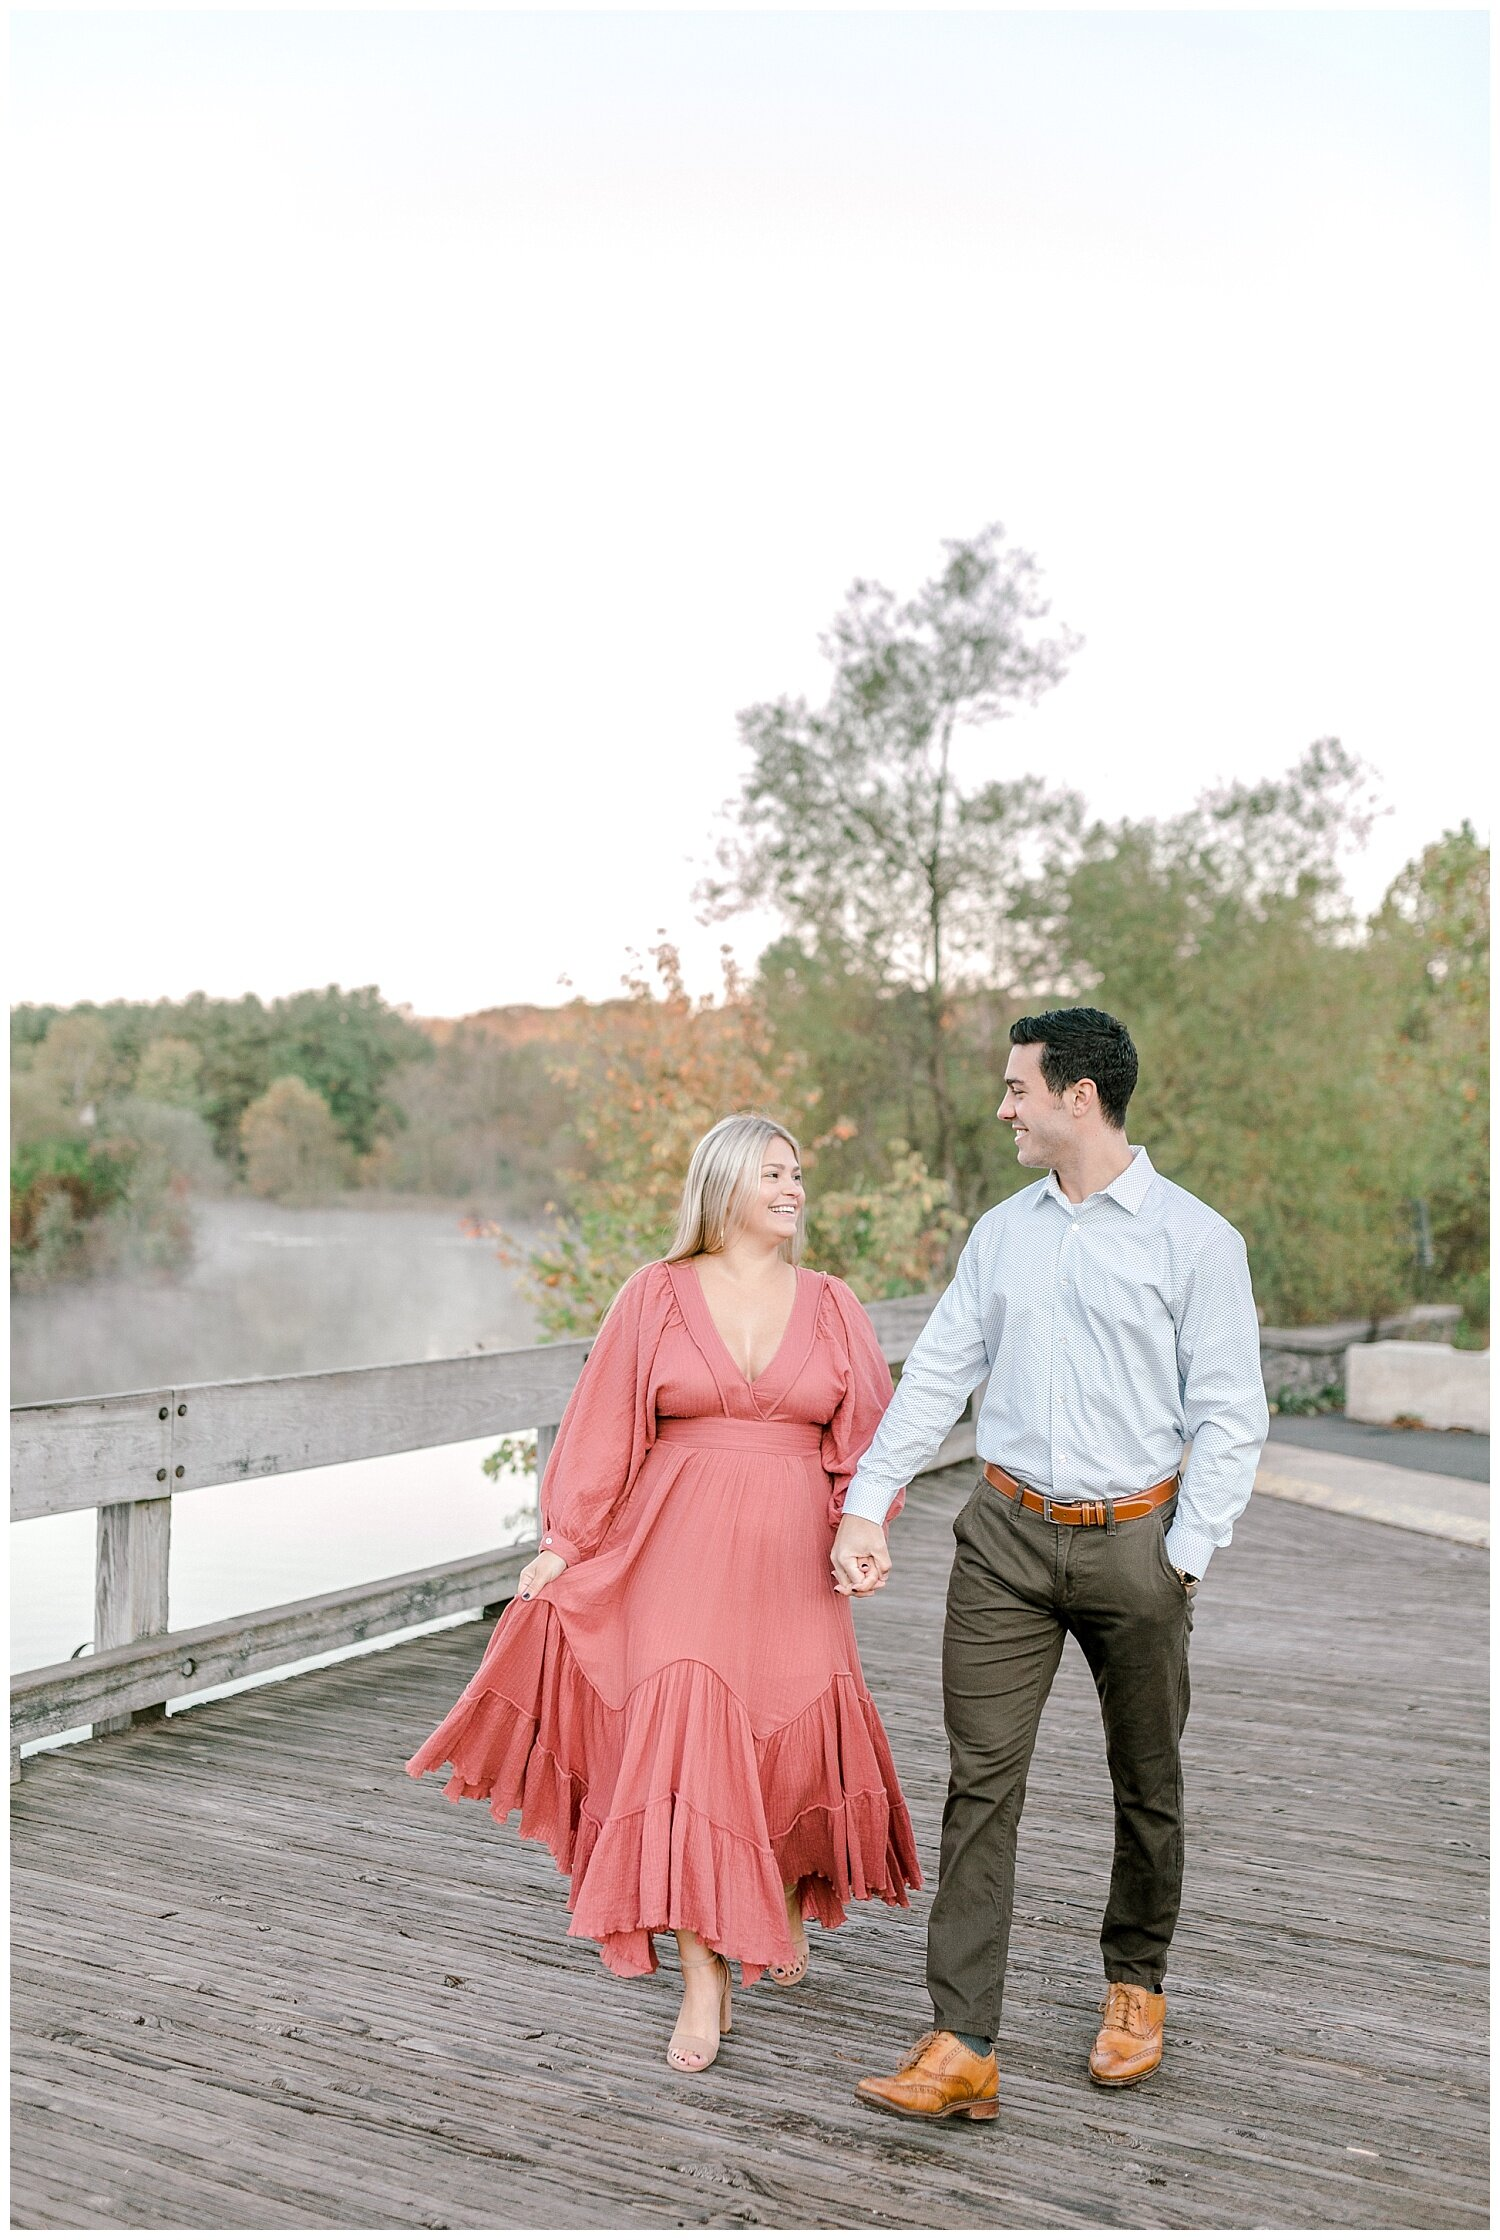 Peace Valley Park Doylestown bucks county PA fall sunrise engagement session  lehigh valley pennsylvania based wedding and lifestyle photographer Jeannie Lytle of Lytle Photography Company_0005.jpg